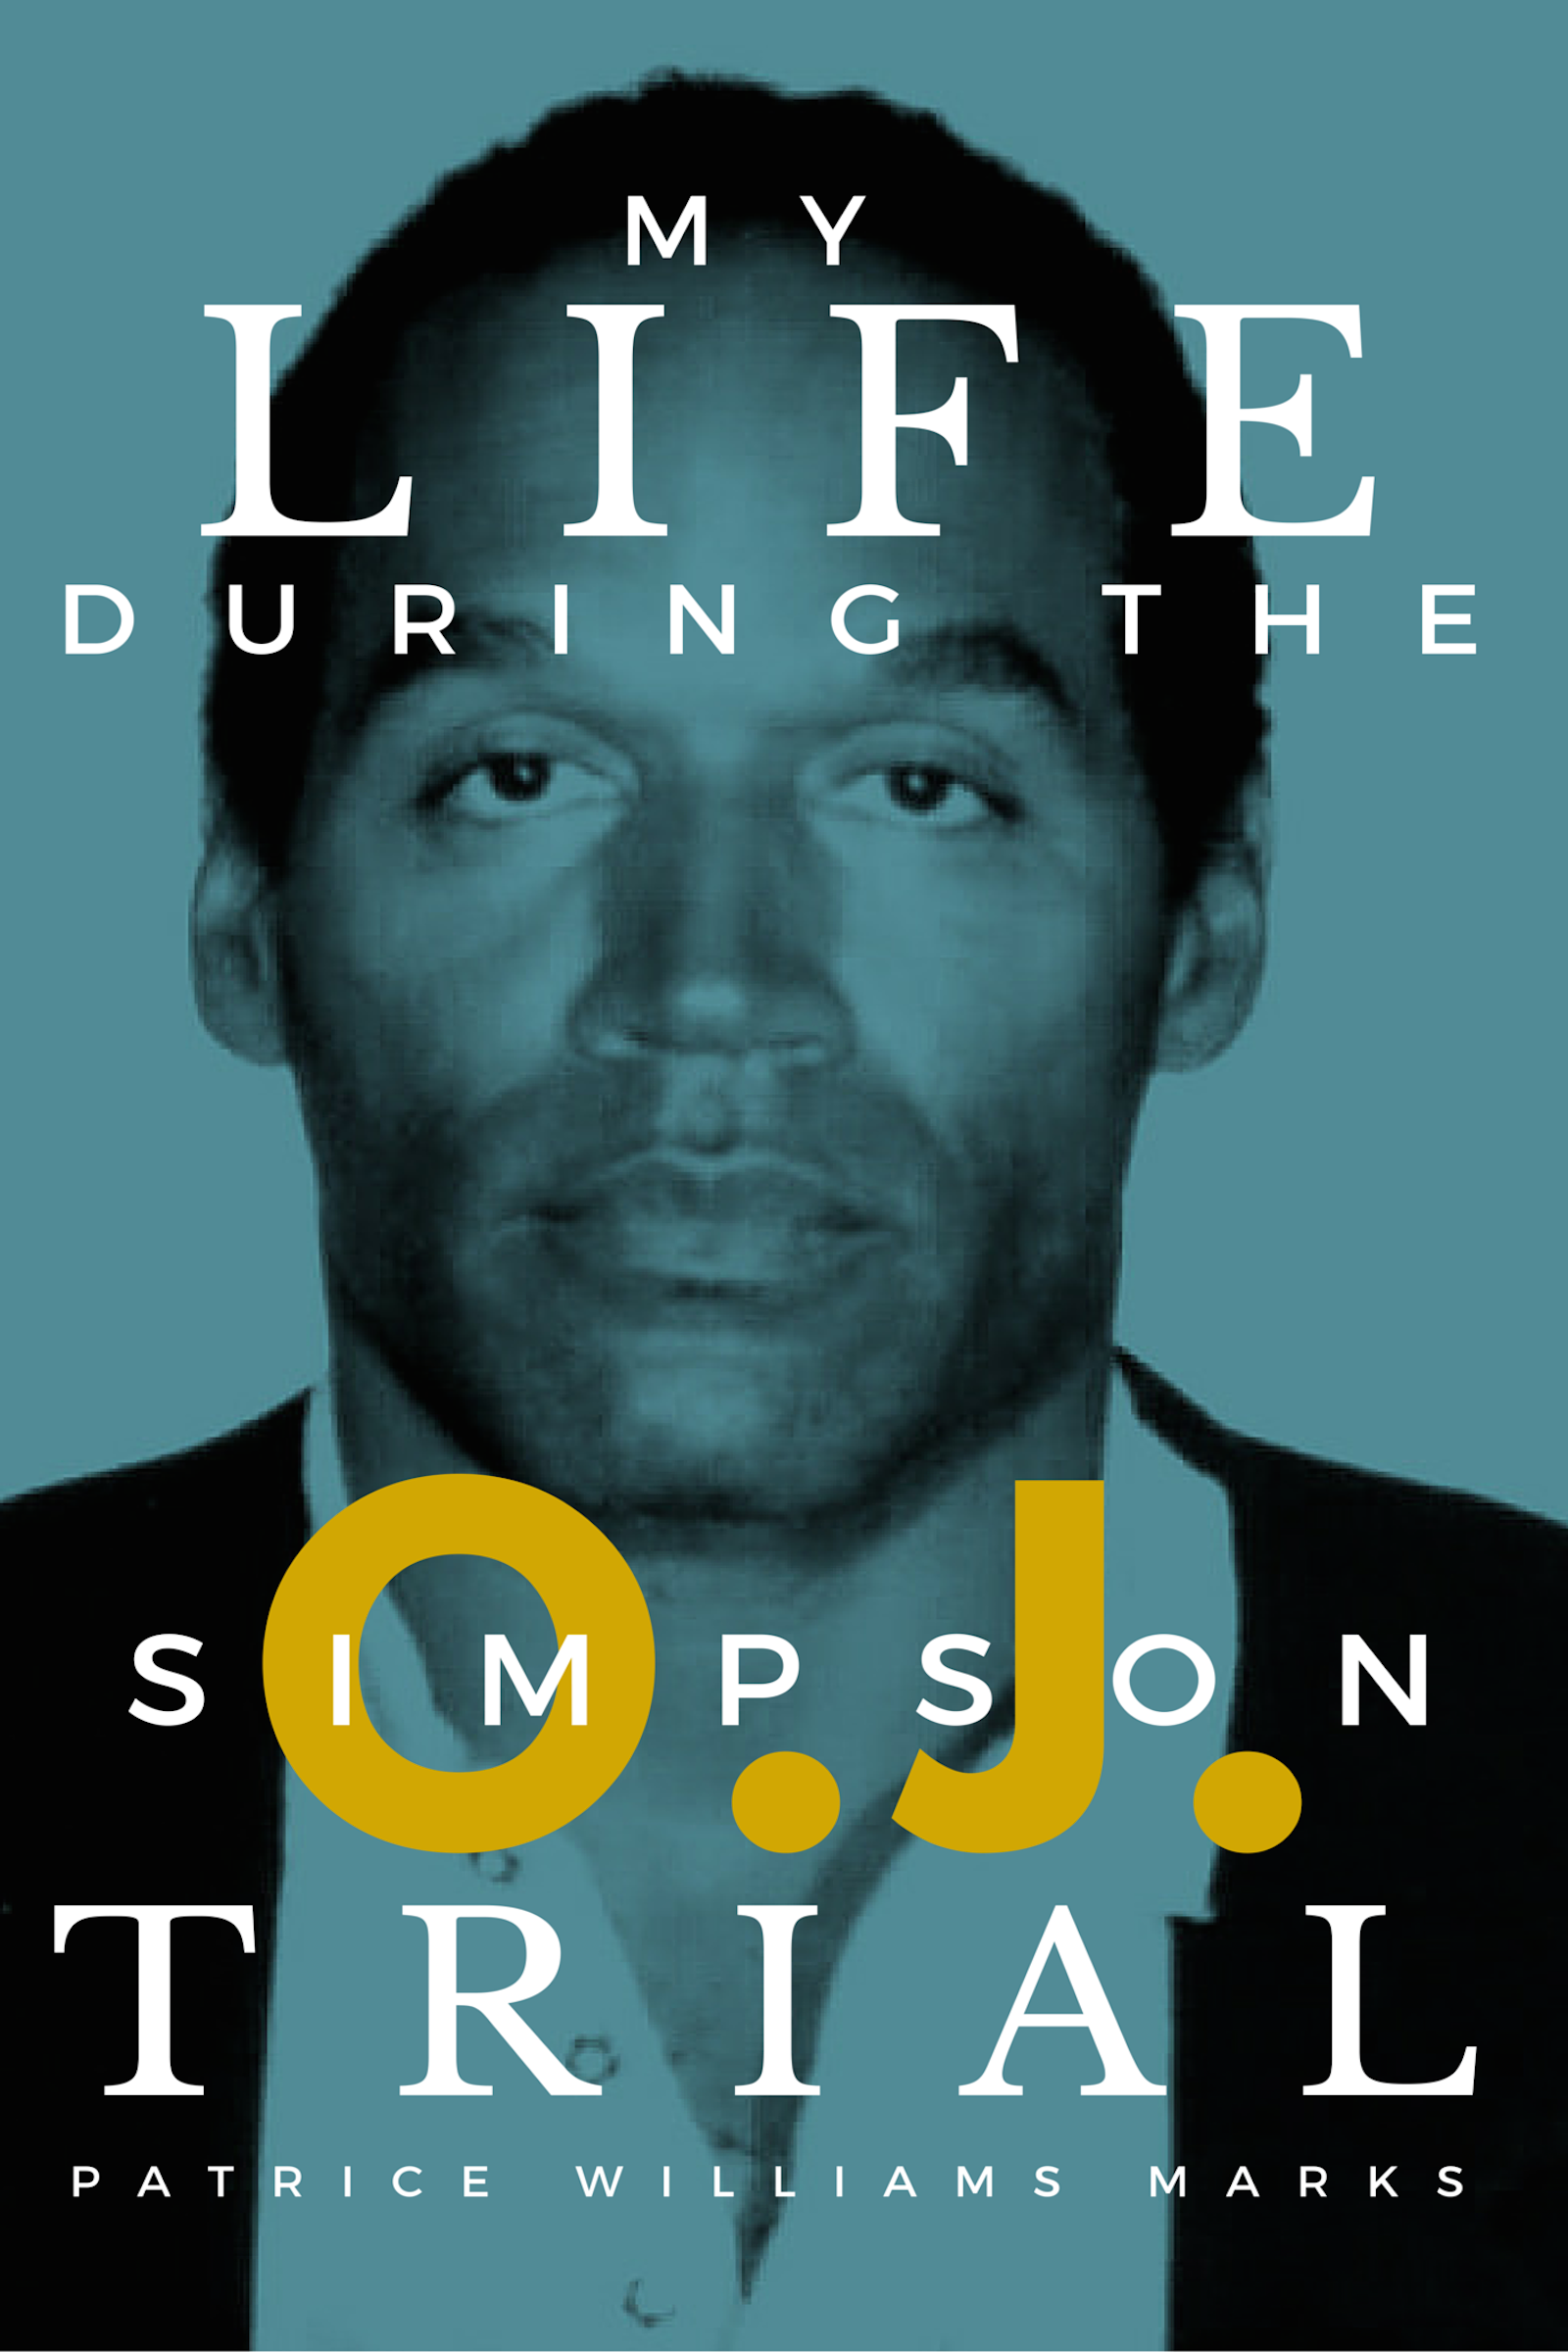 My-Life-During-The-OJ-Simpson-Trial-Book-By-Patrice-Williams-Marks